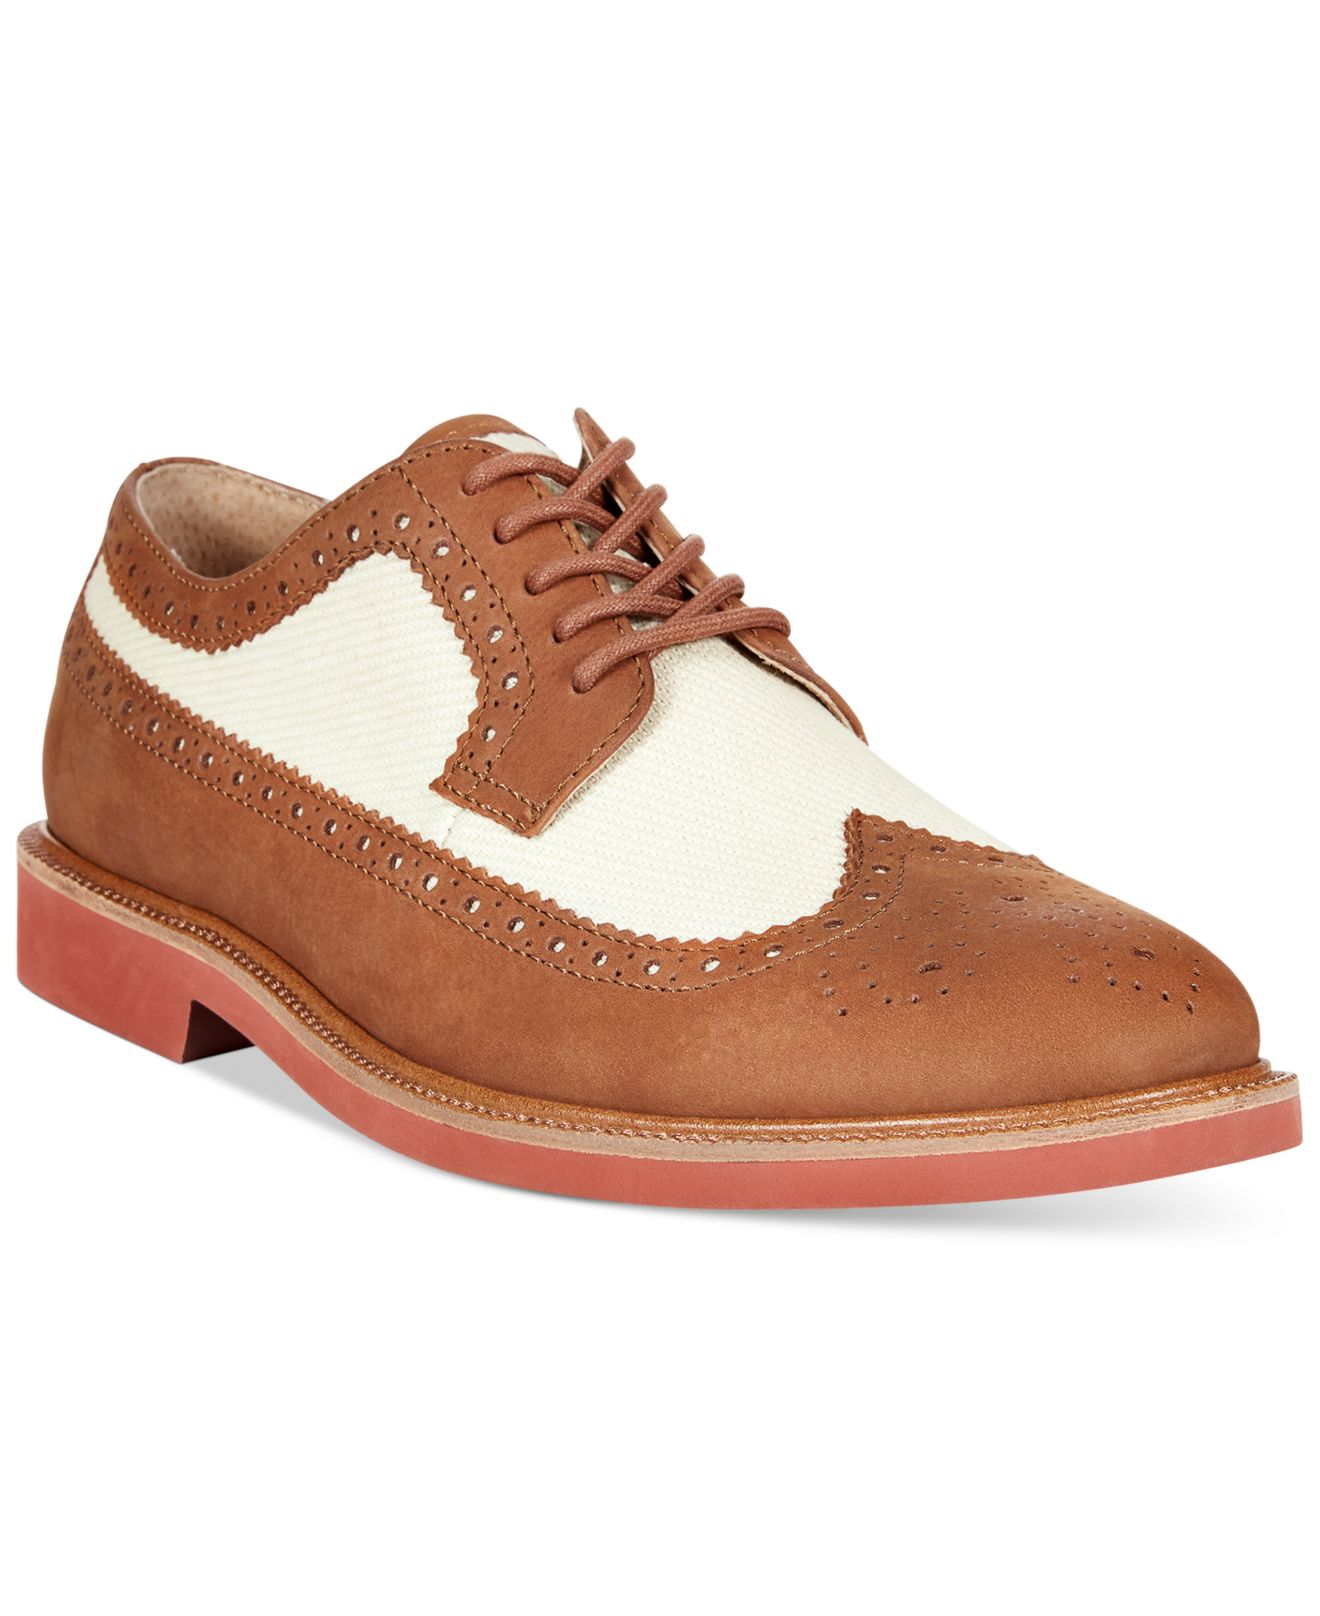 2019 year looks- Dress Polo shoes